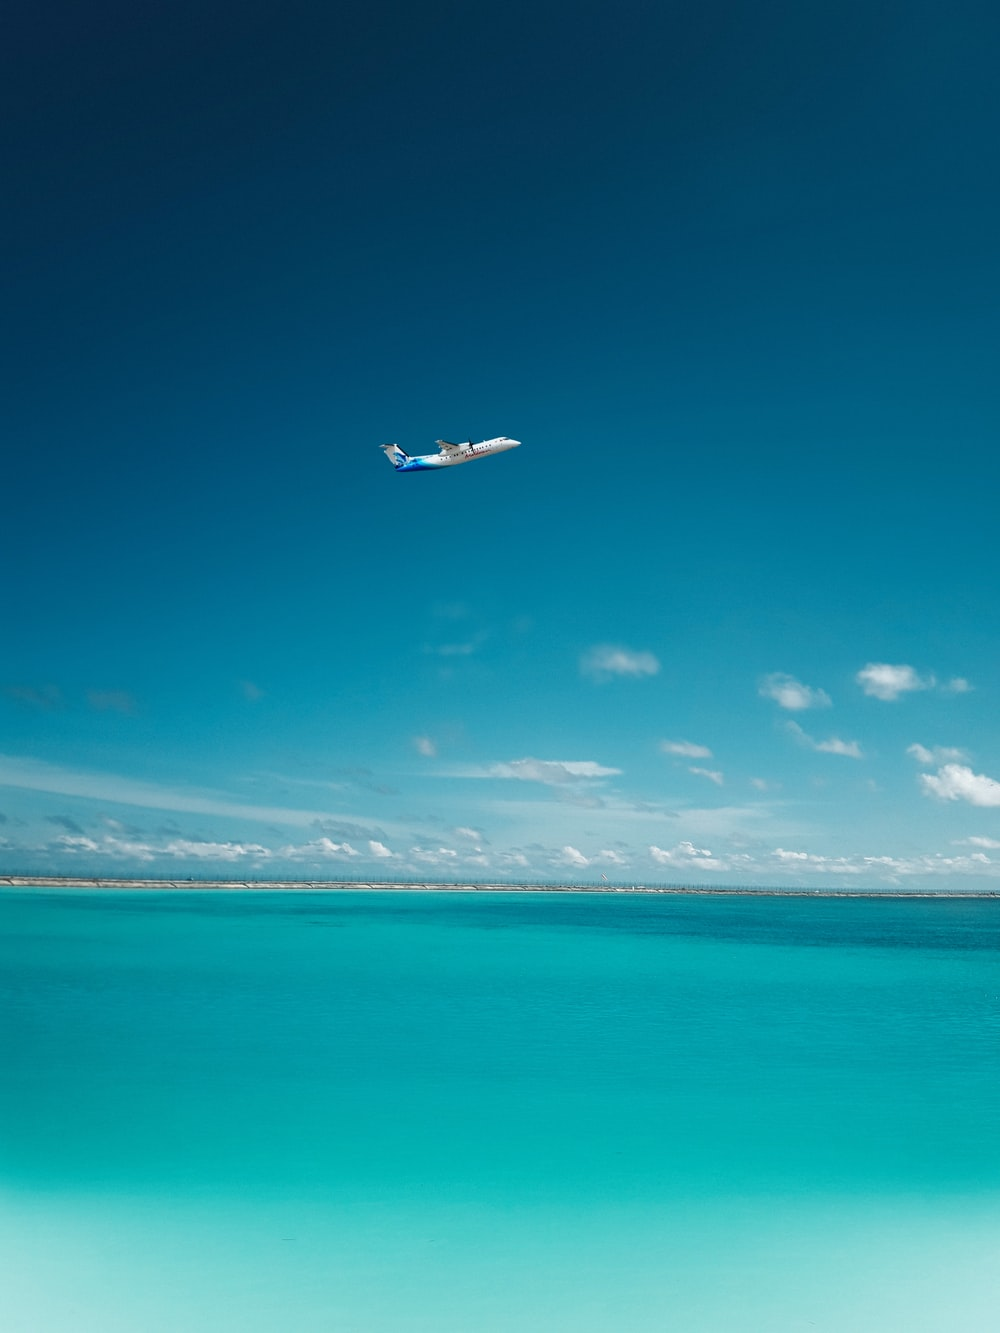 photo of airplane over body of water